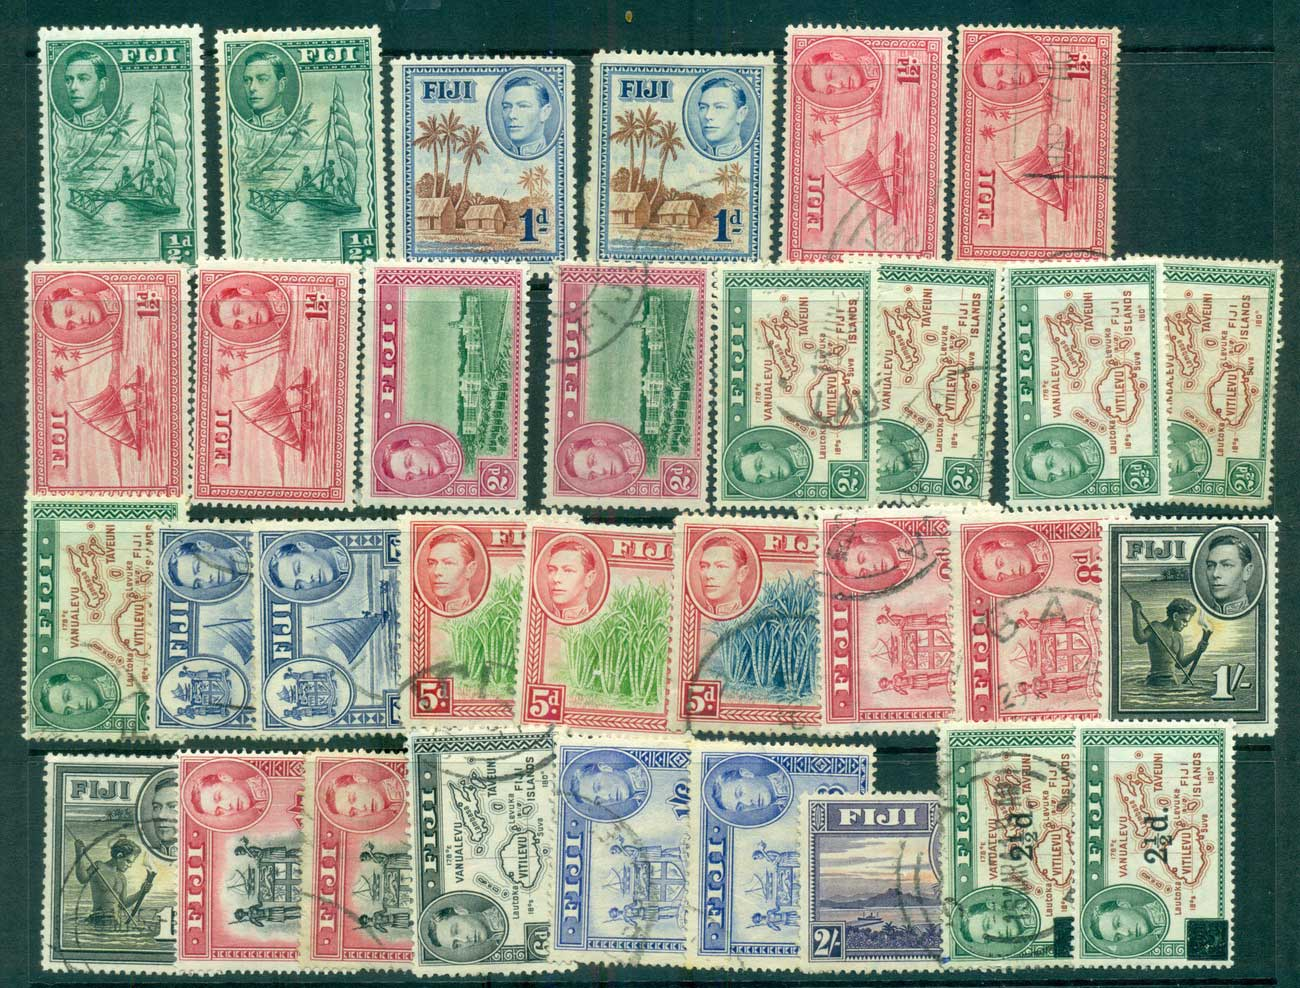 Fiji 1938-55 KGVI Pictorials Asst inc 5d blue canes MLH/FU lot68234